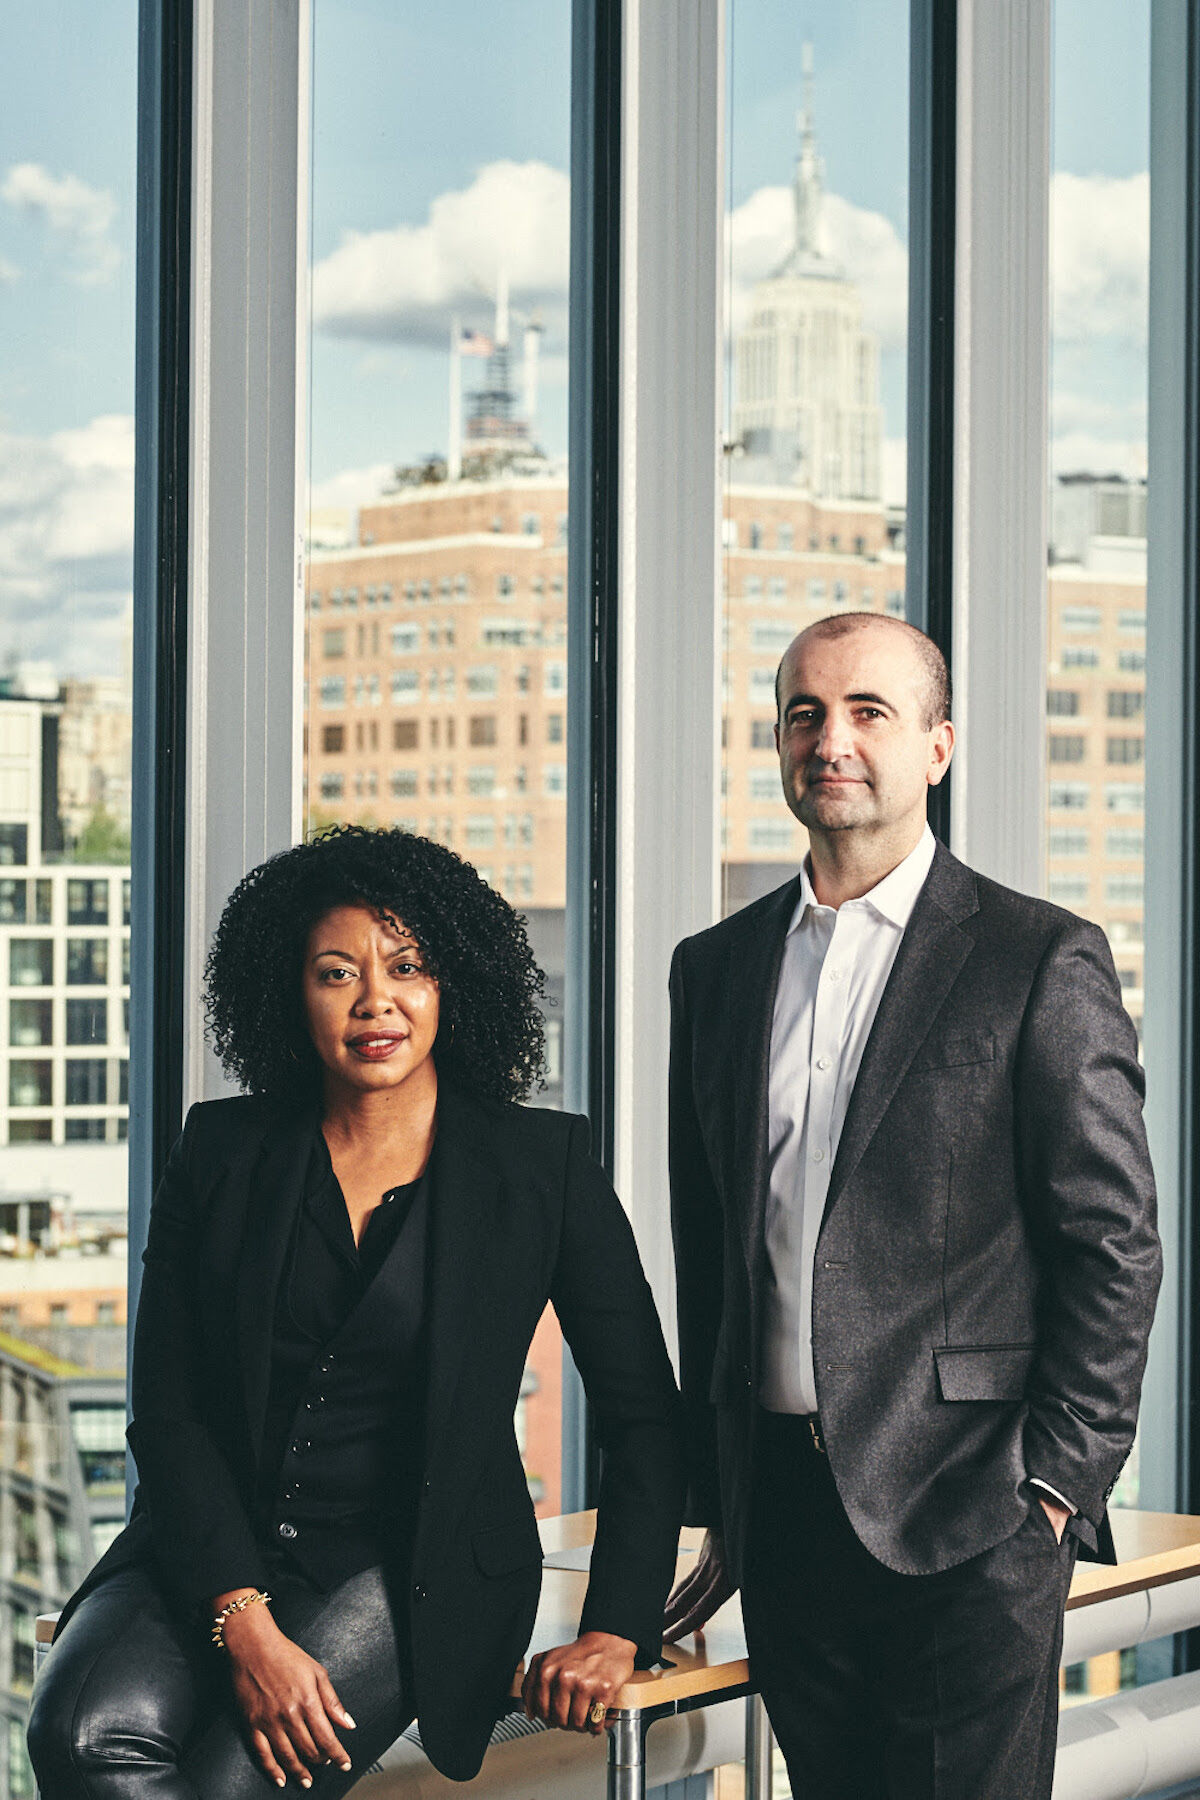 David Breslin and Adrienne Edwards, who will co-curate the 2021 Whitney Biennial. Photo by Bryan Derballa. Courtesy the Whitney Museum of American Art.